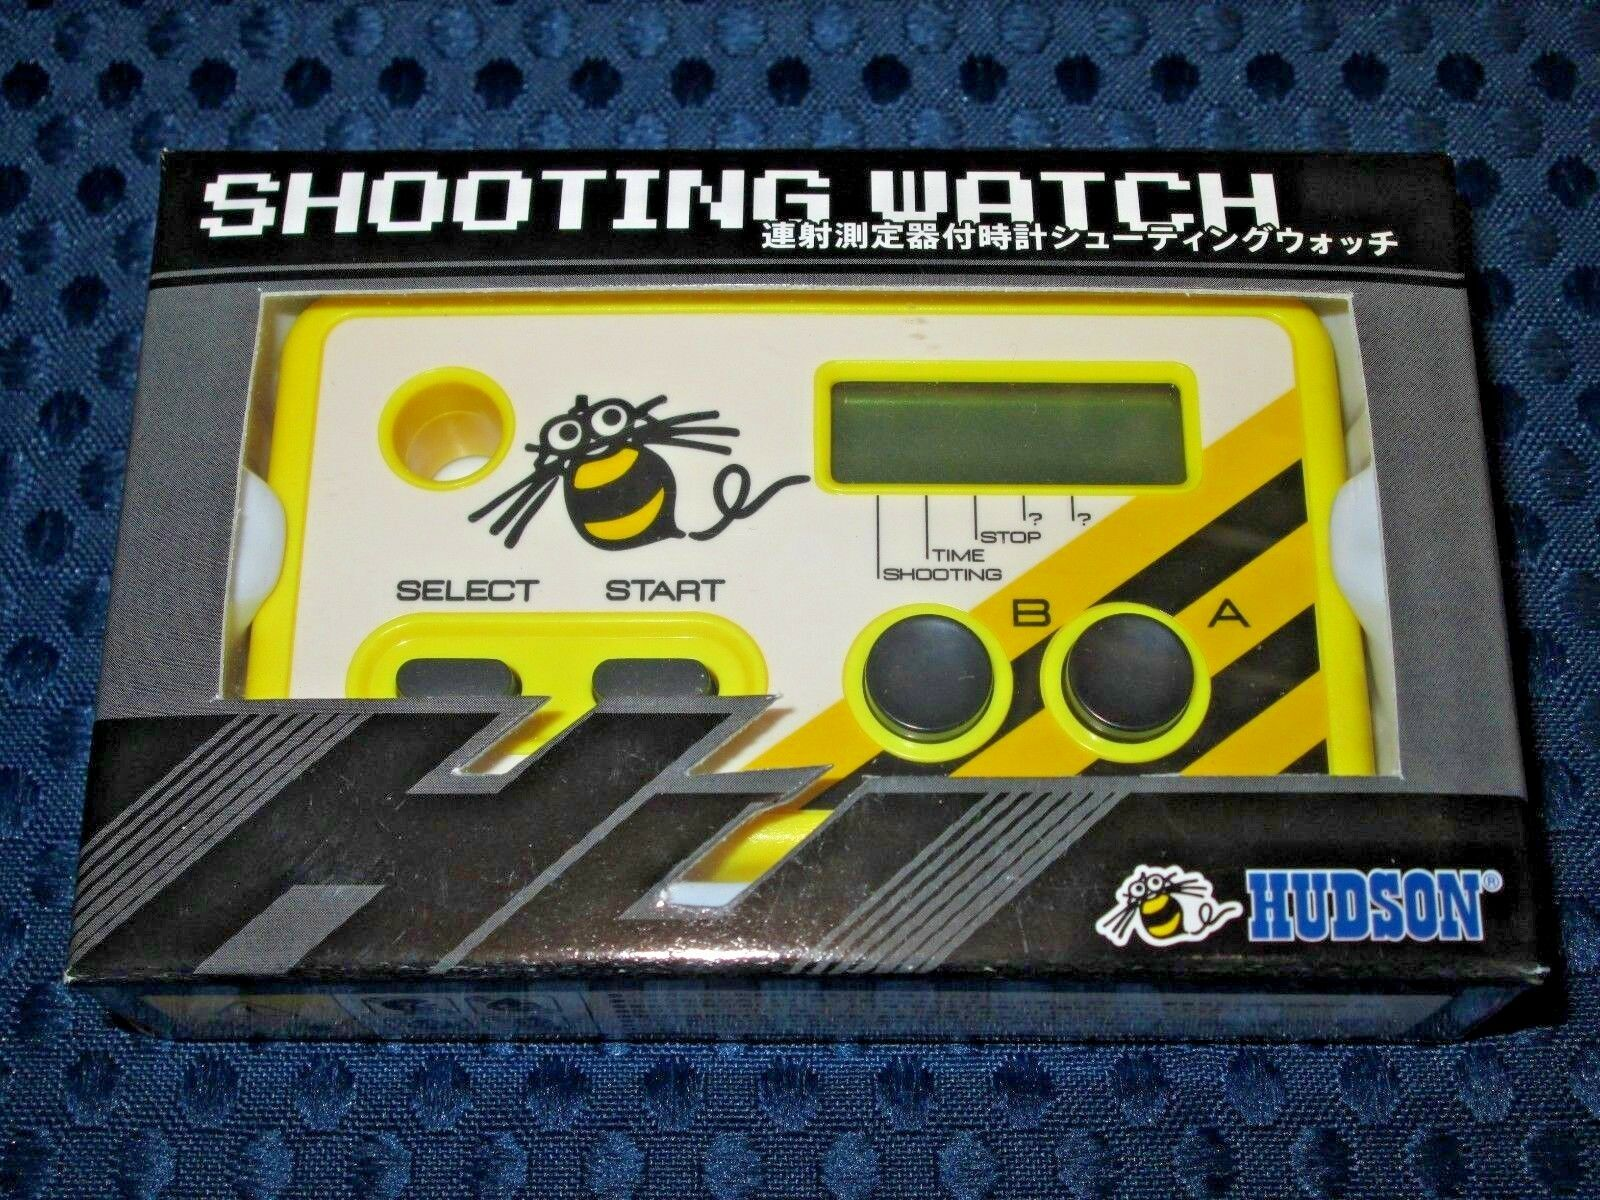 Hudson Shooting Watch Limited Revised ver G&W Game Rapid Fire counter JAPAN F S